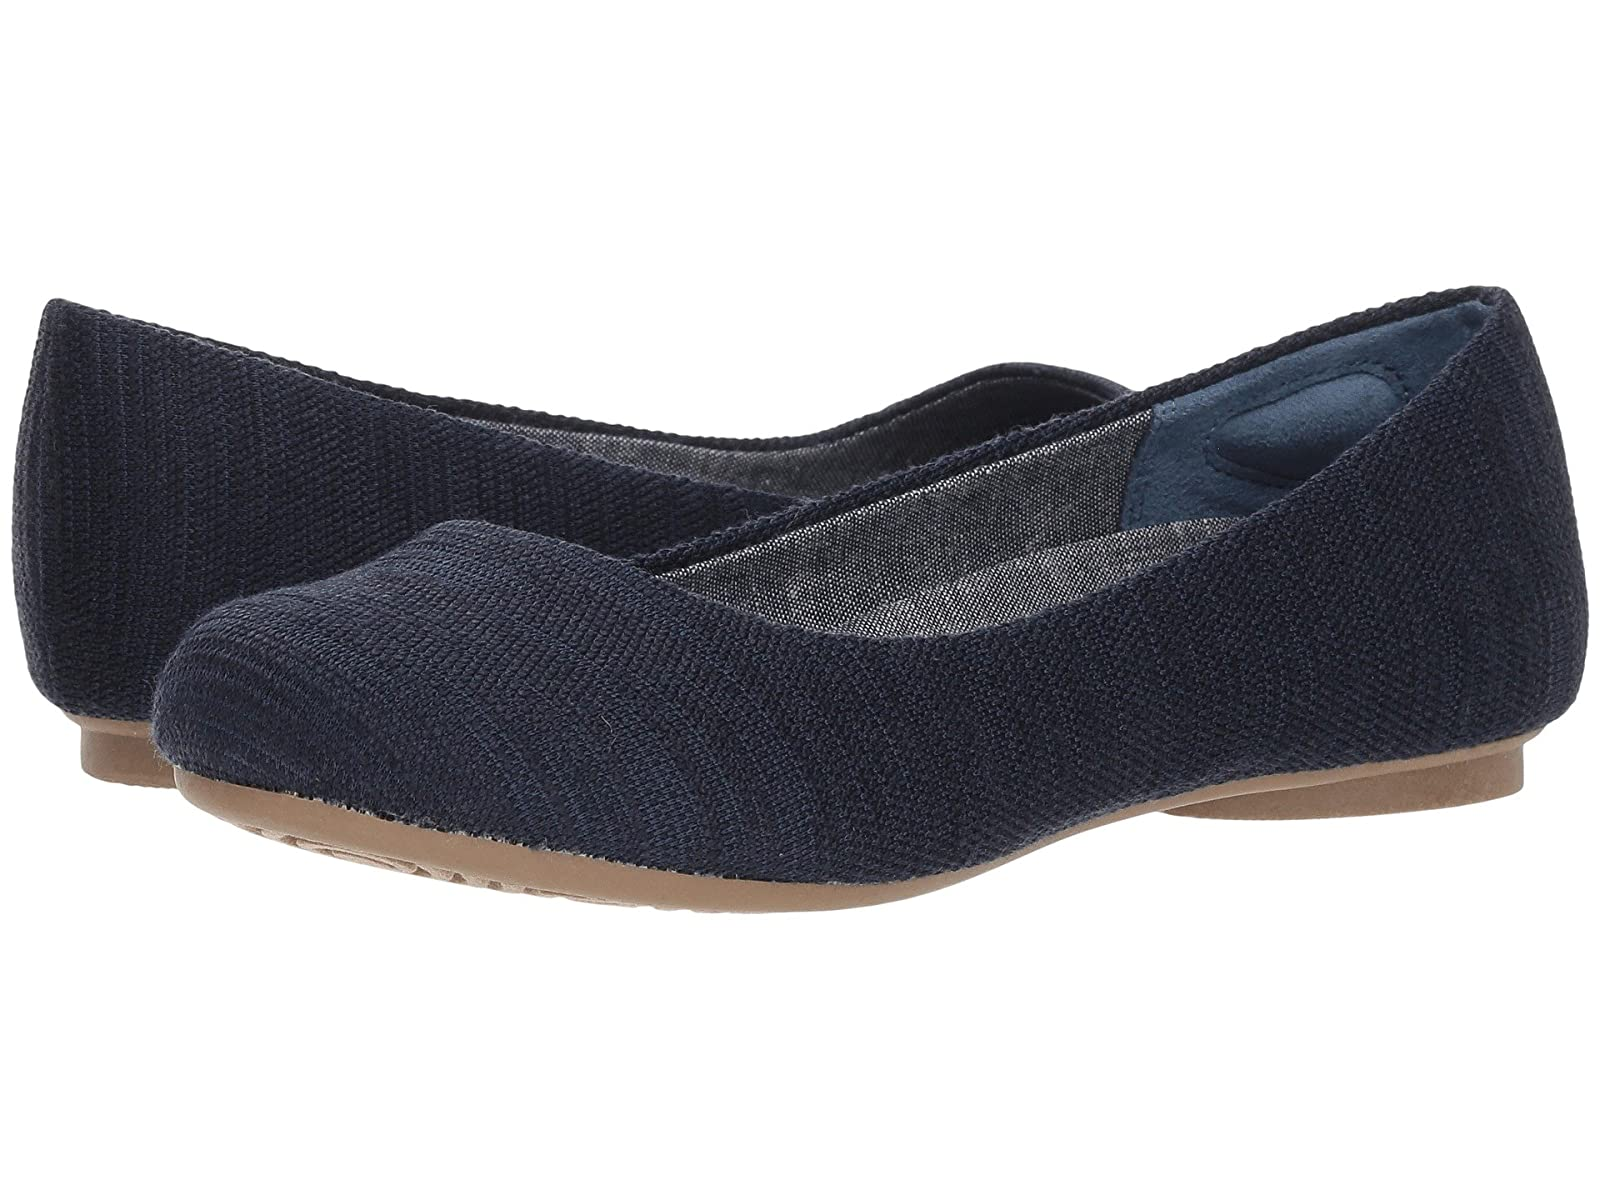 Dr. Scholl's Friendly 2Atmospheric grades have affordable shoes